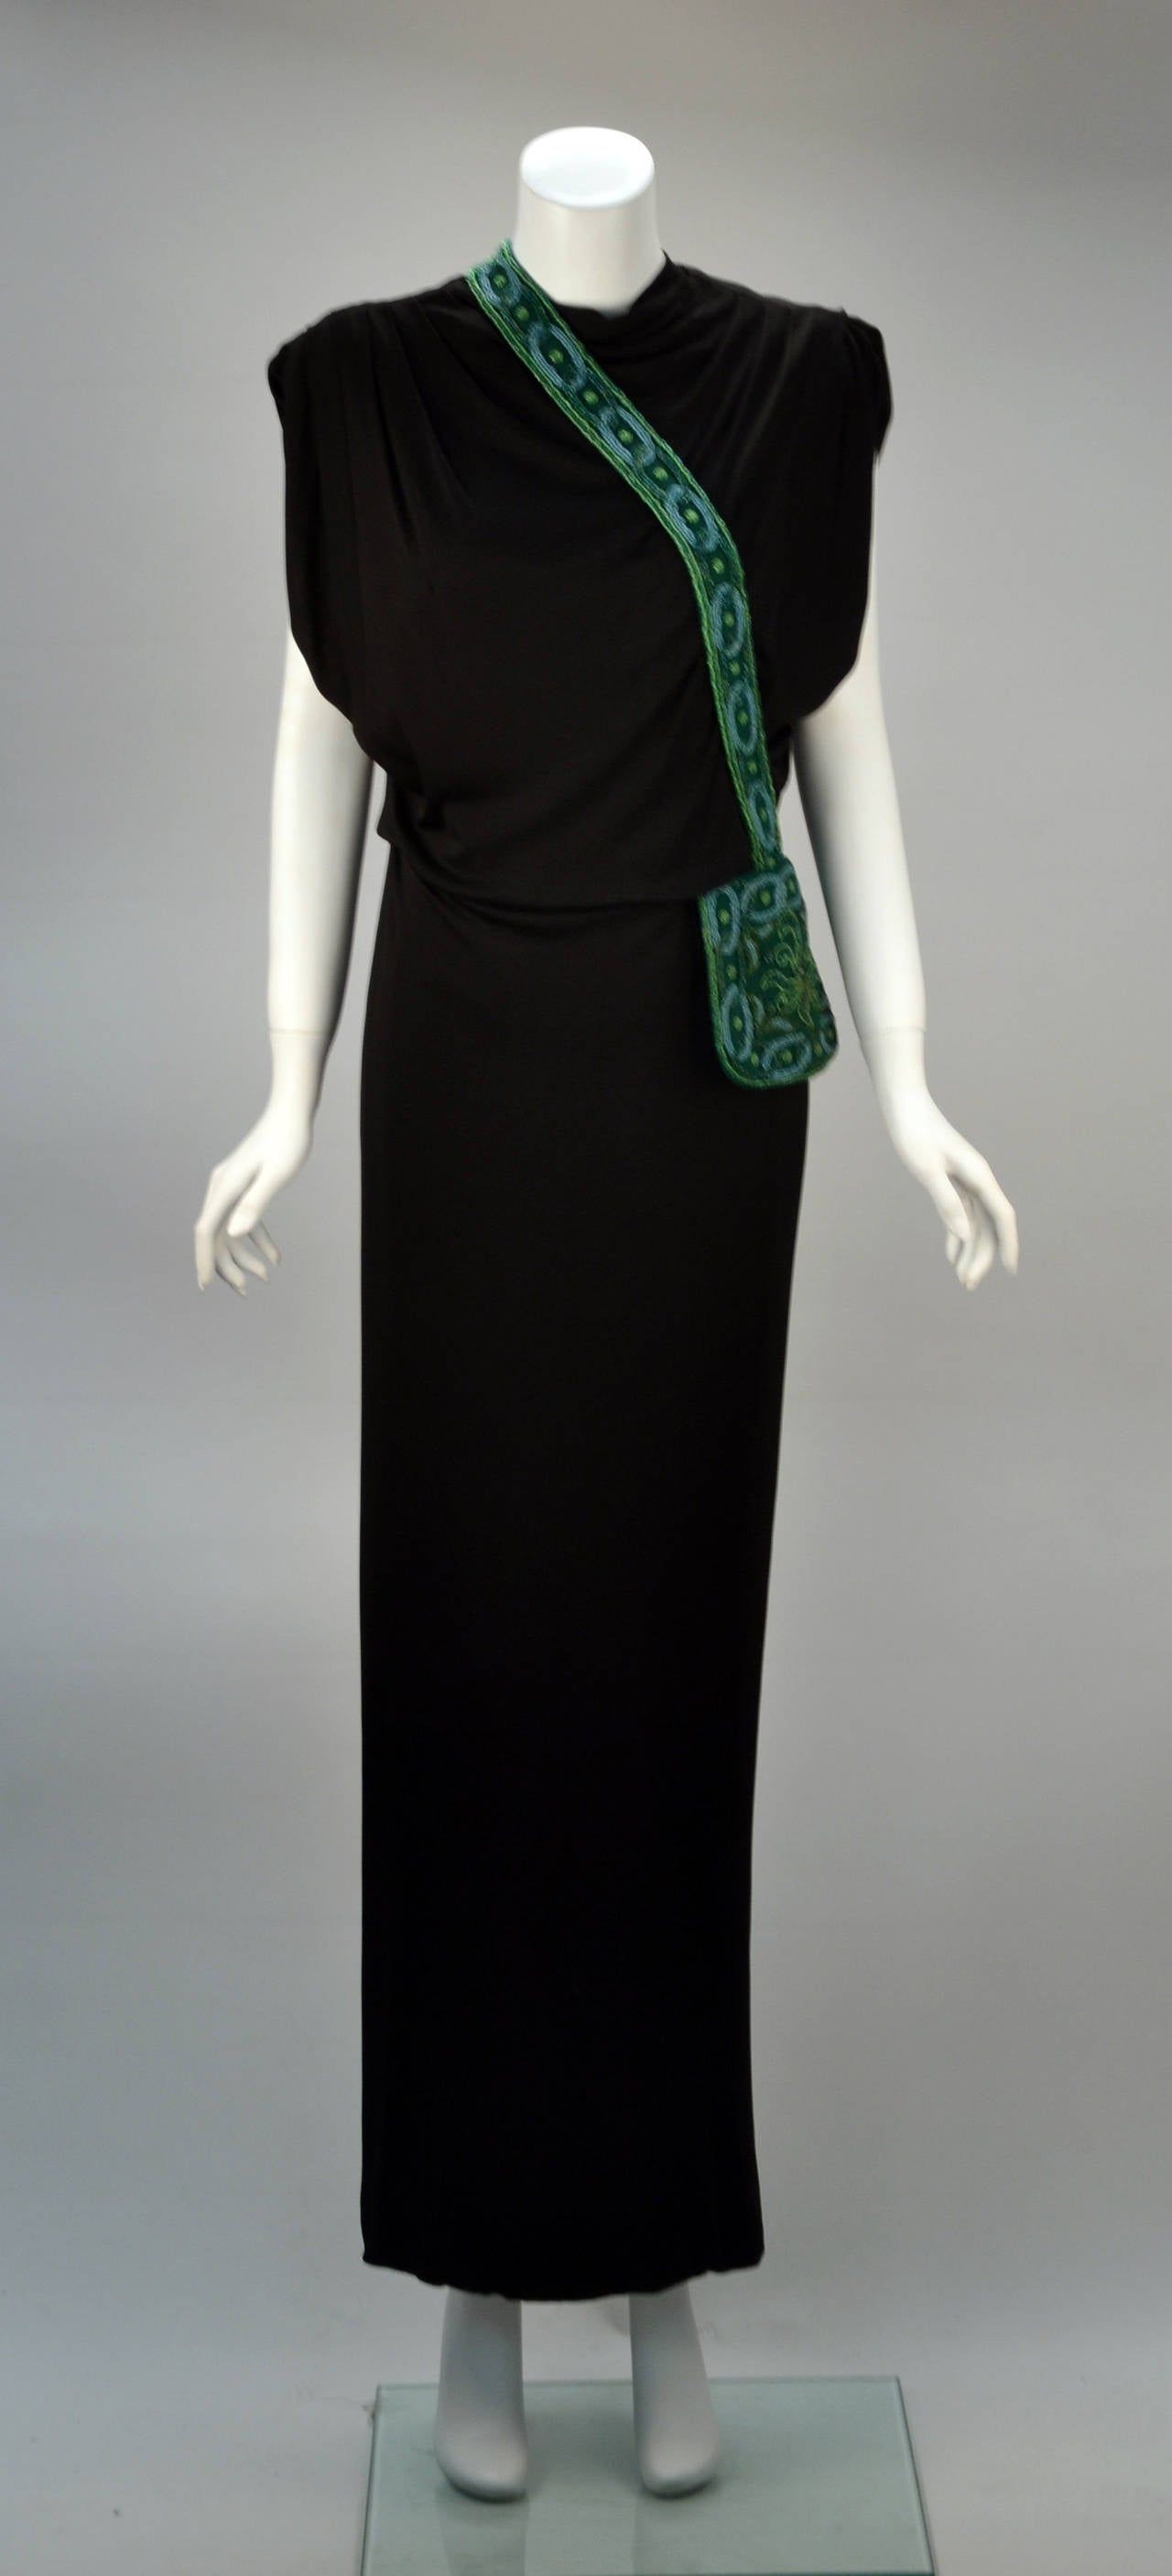 Long black dress with trompe l'oeil beading appears as a purse lying across this gorgeous bodice and sleekly atop the left hip. The beading dazzles in glorious hues of green and blue. Beautifully draped arm holes. High neck. Sophisticated fit and